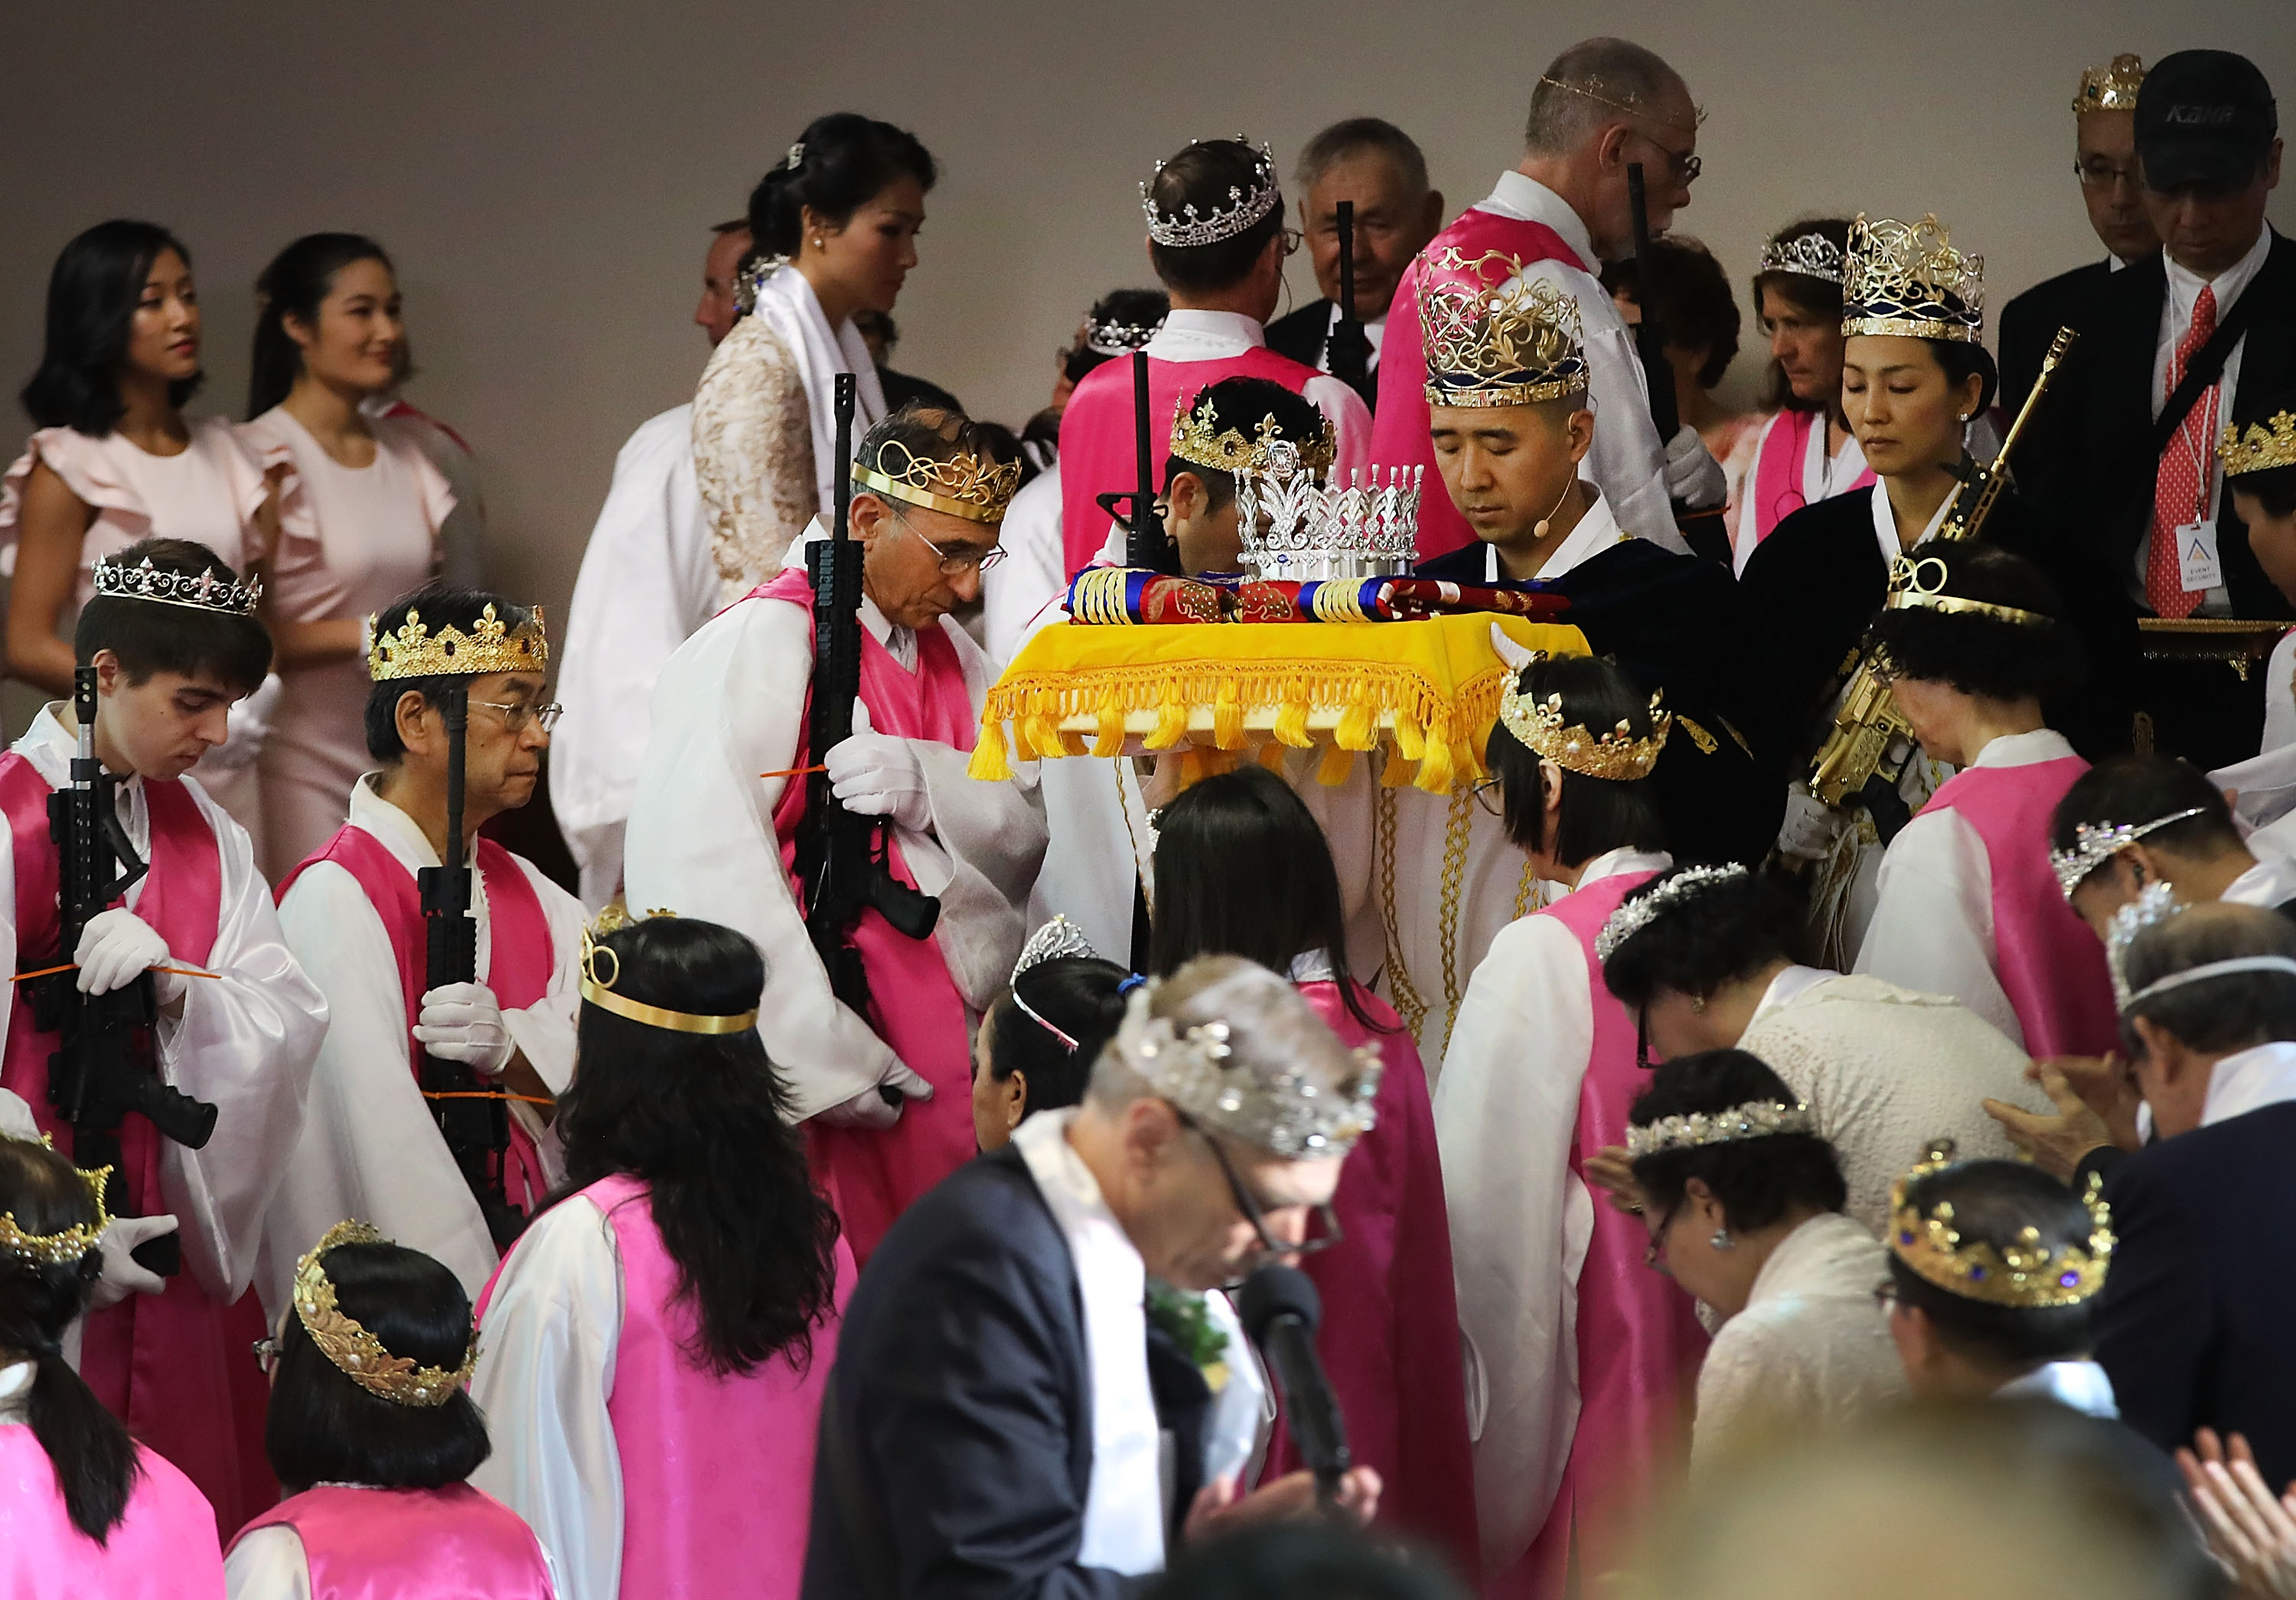 The cultlike church behind a ceremony with AR-15s and bullet crowns